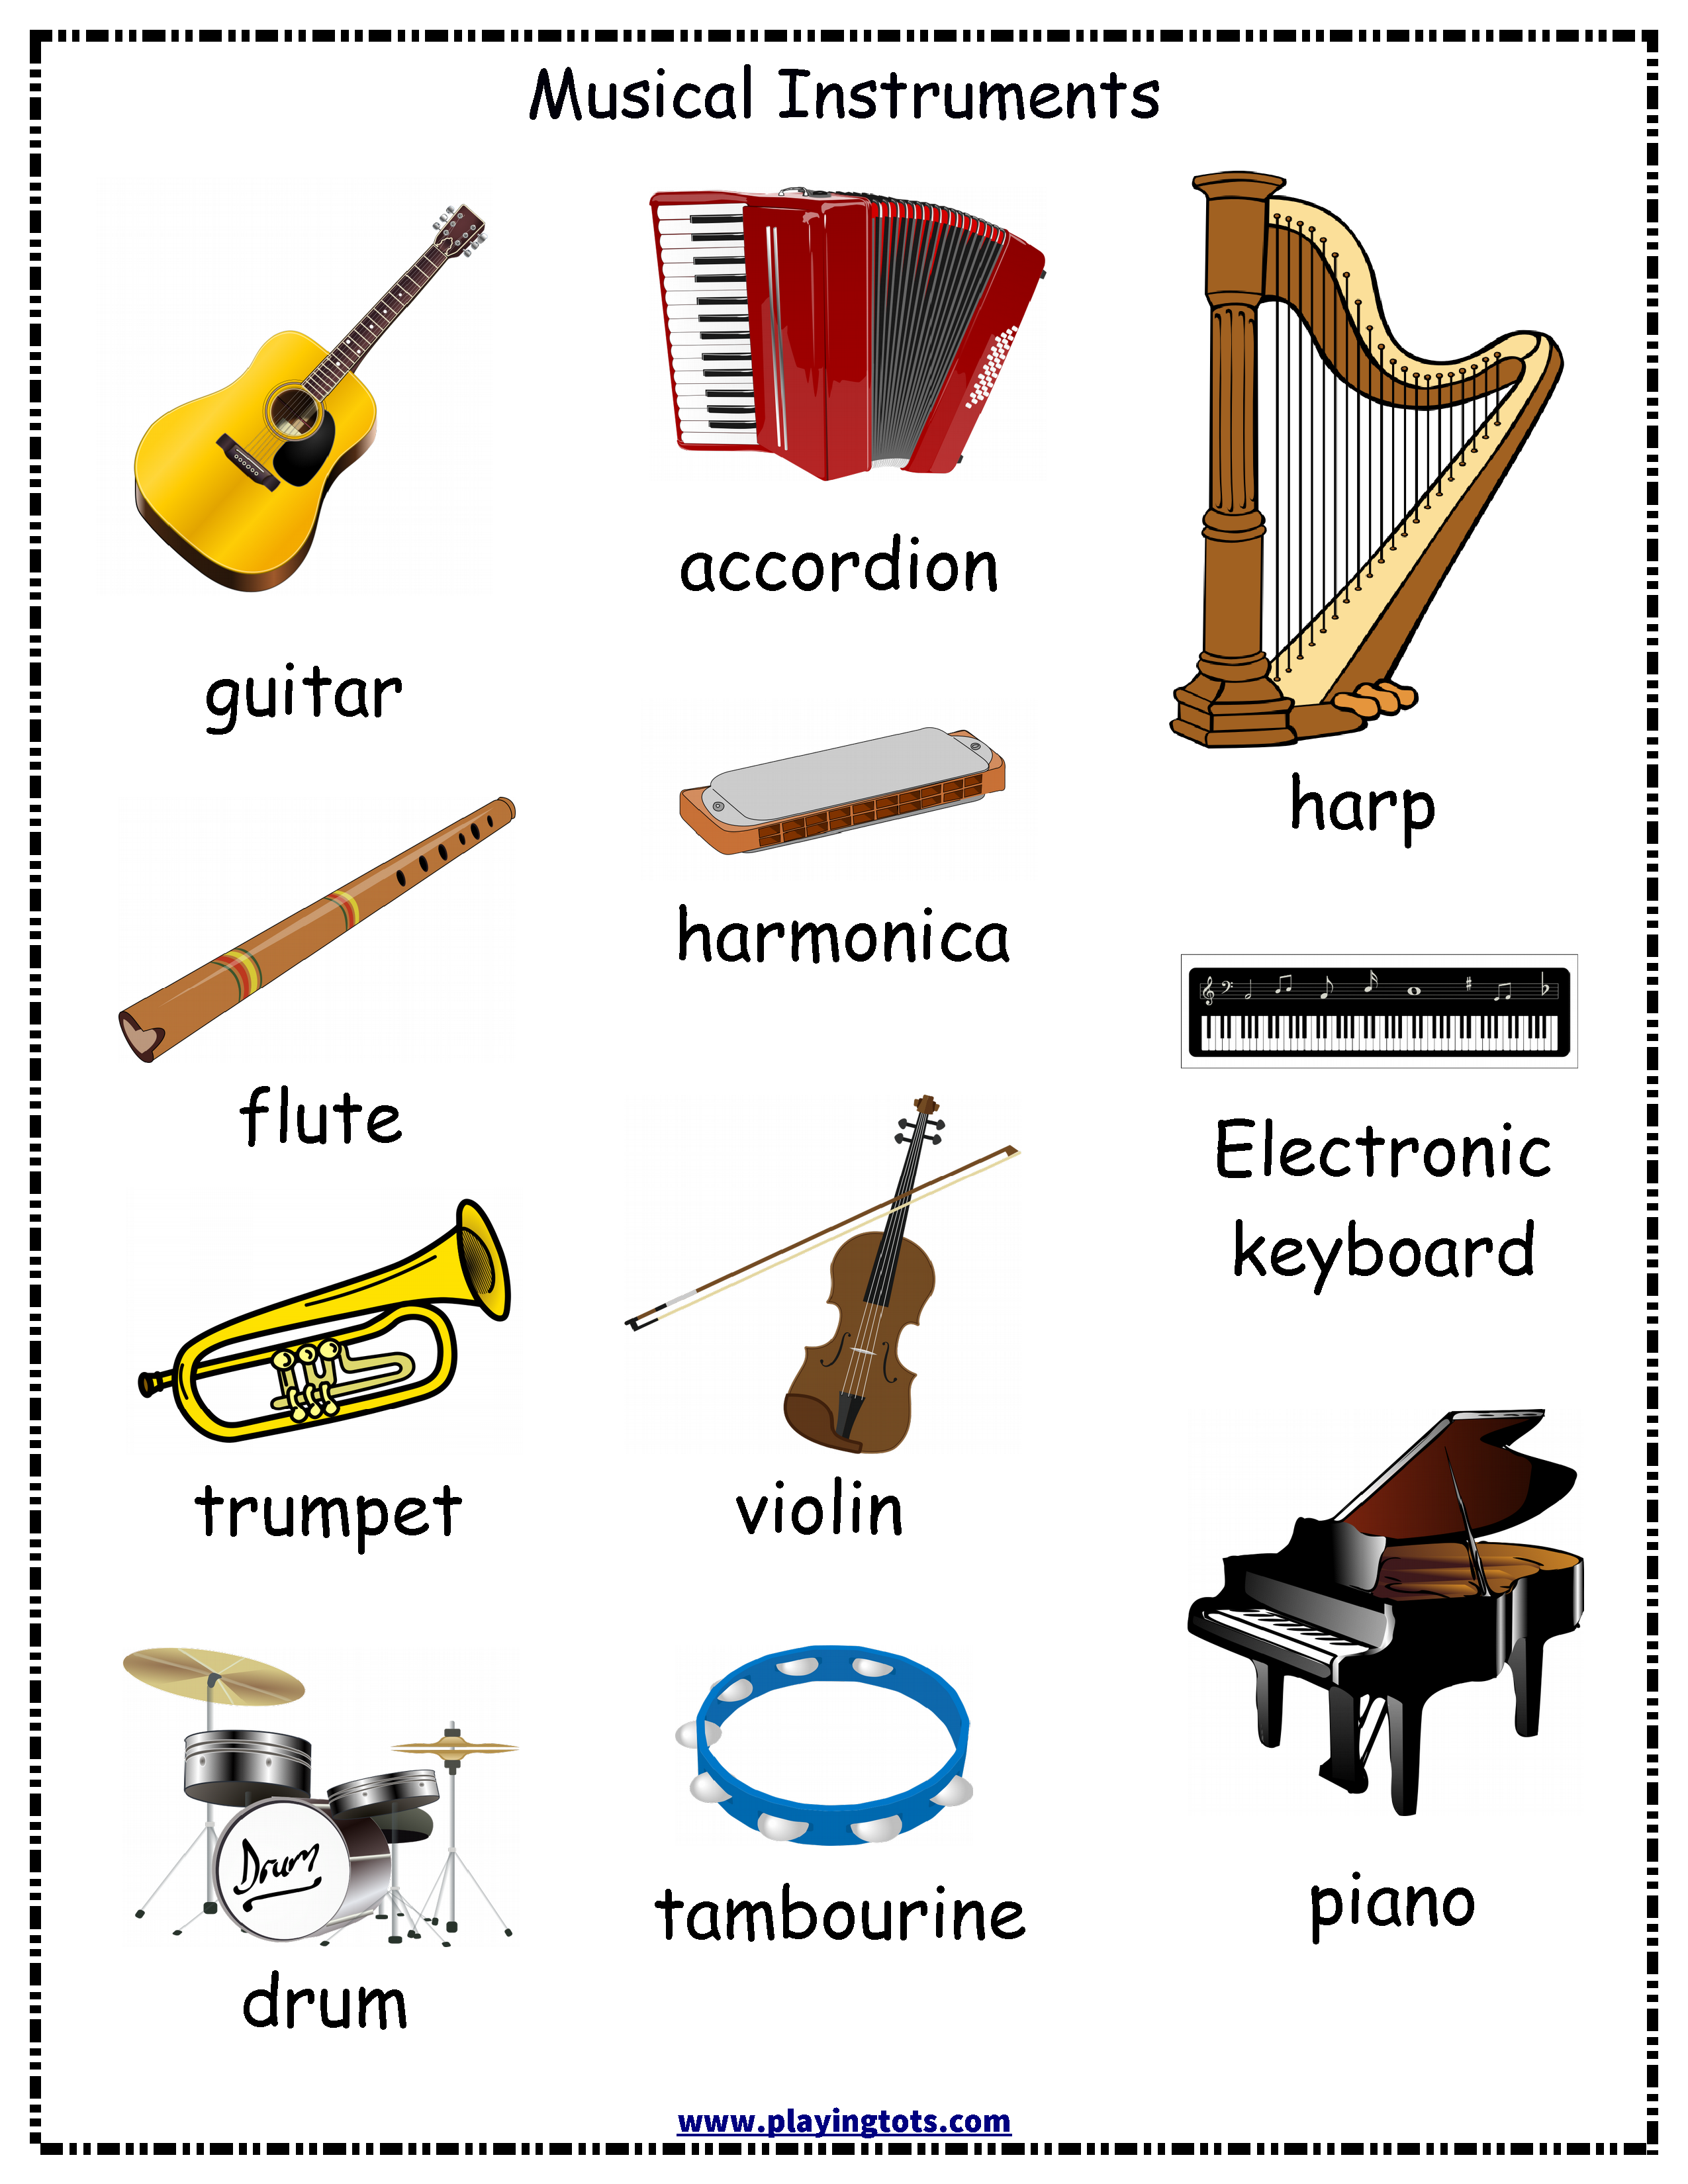 photo regarding Printable Pictures of Musical Instruments called cost-free printable musical tools chart Homeschool